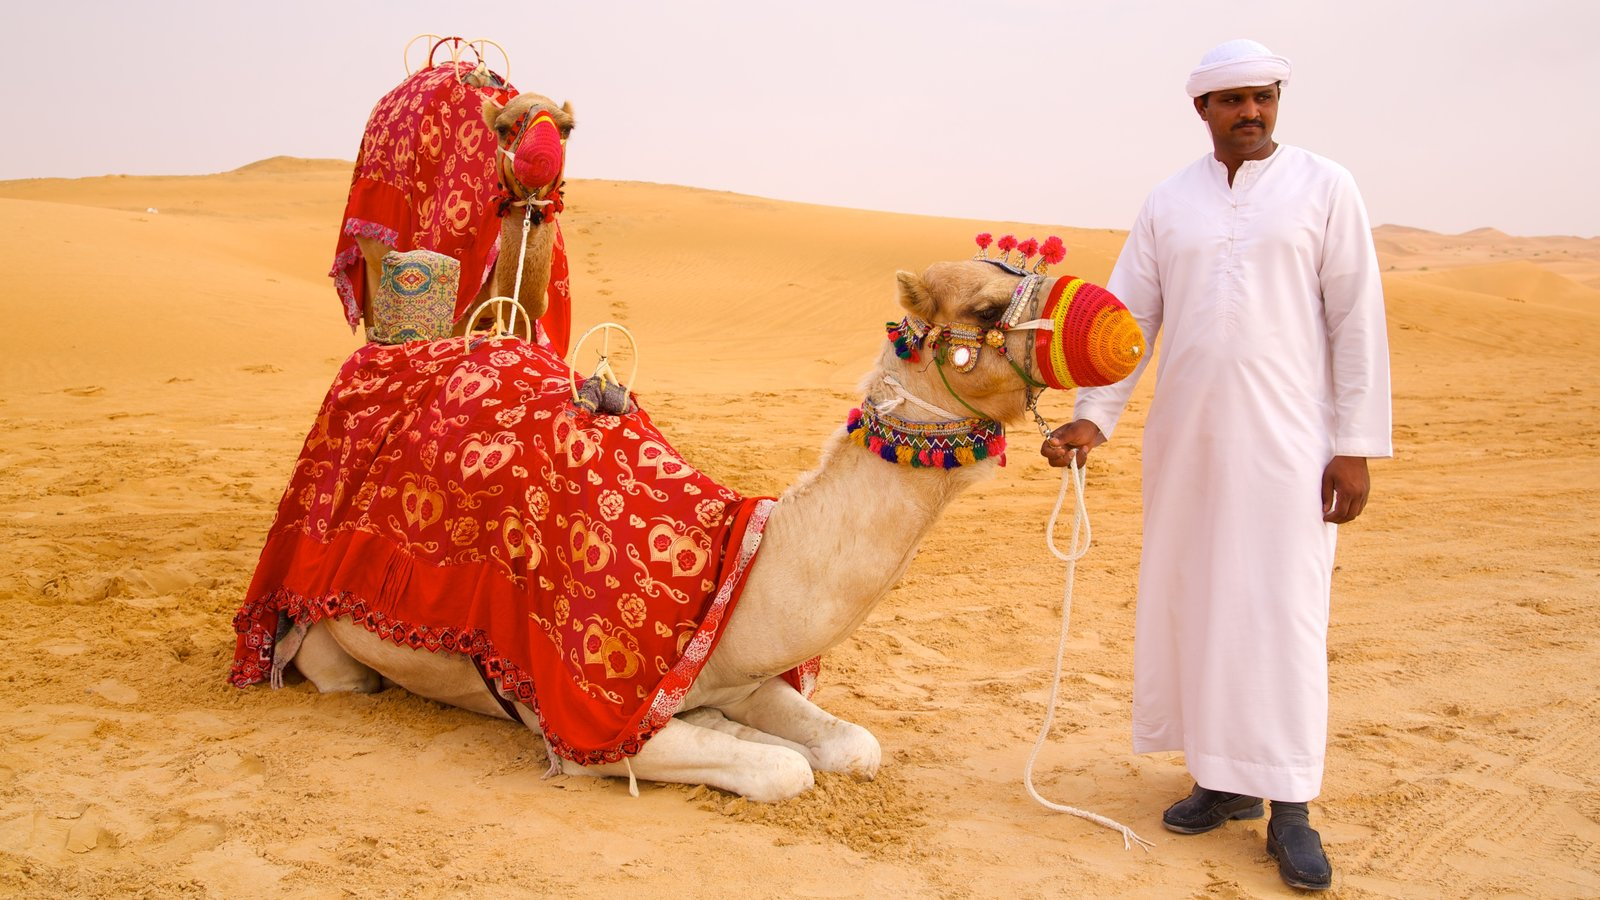 Abu Dhabi Emirate which includes desert views and land animals as well as an individual male